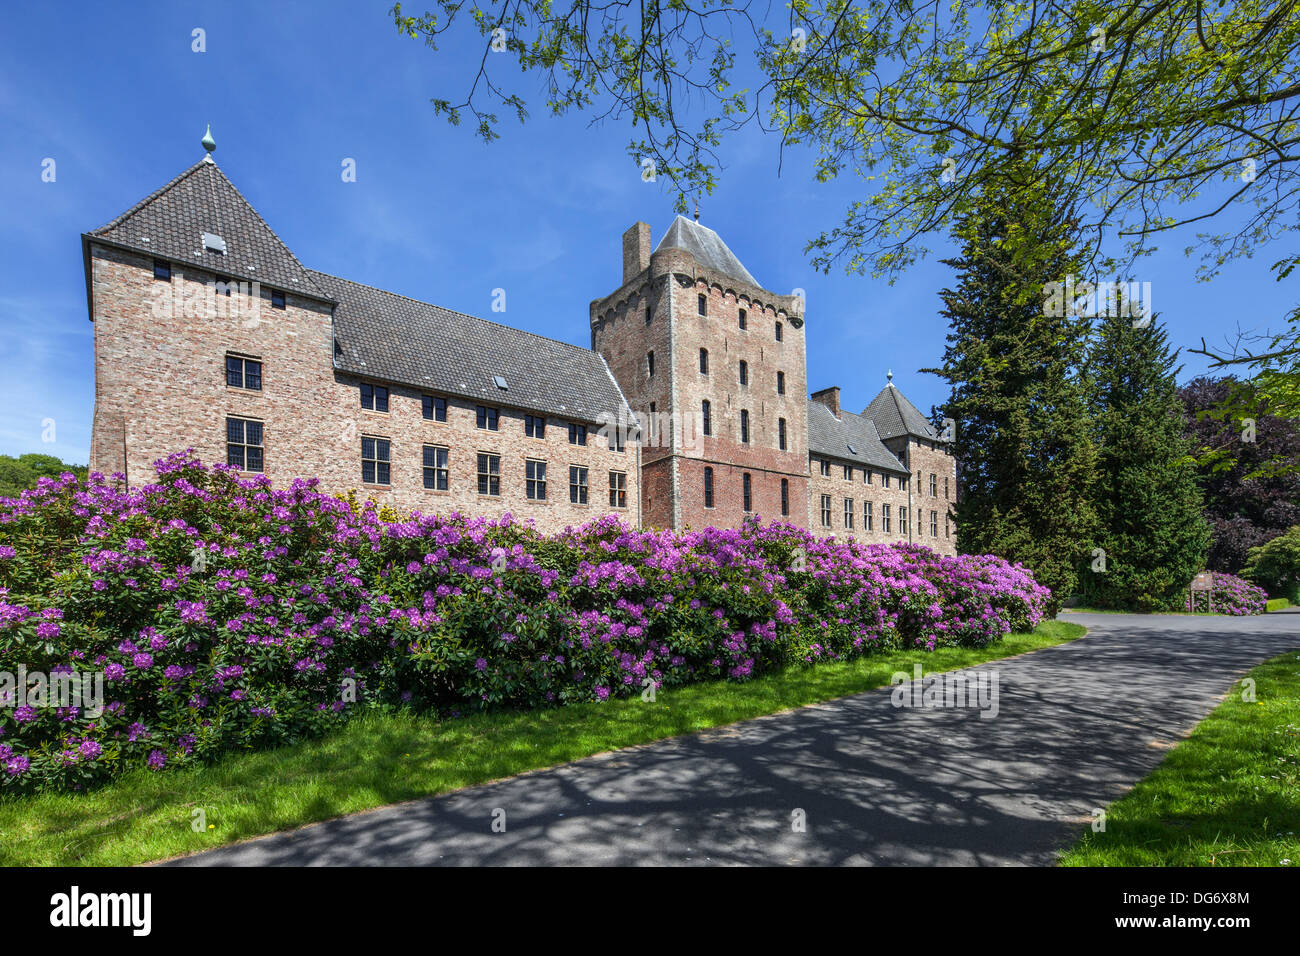 Common / pontic rhododendron (Rhododendron ponticum) flowering in garden of Male Castle, Sint-Kruis near Bruges, Belgium - Stock Image